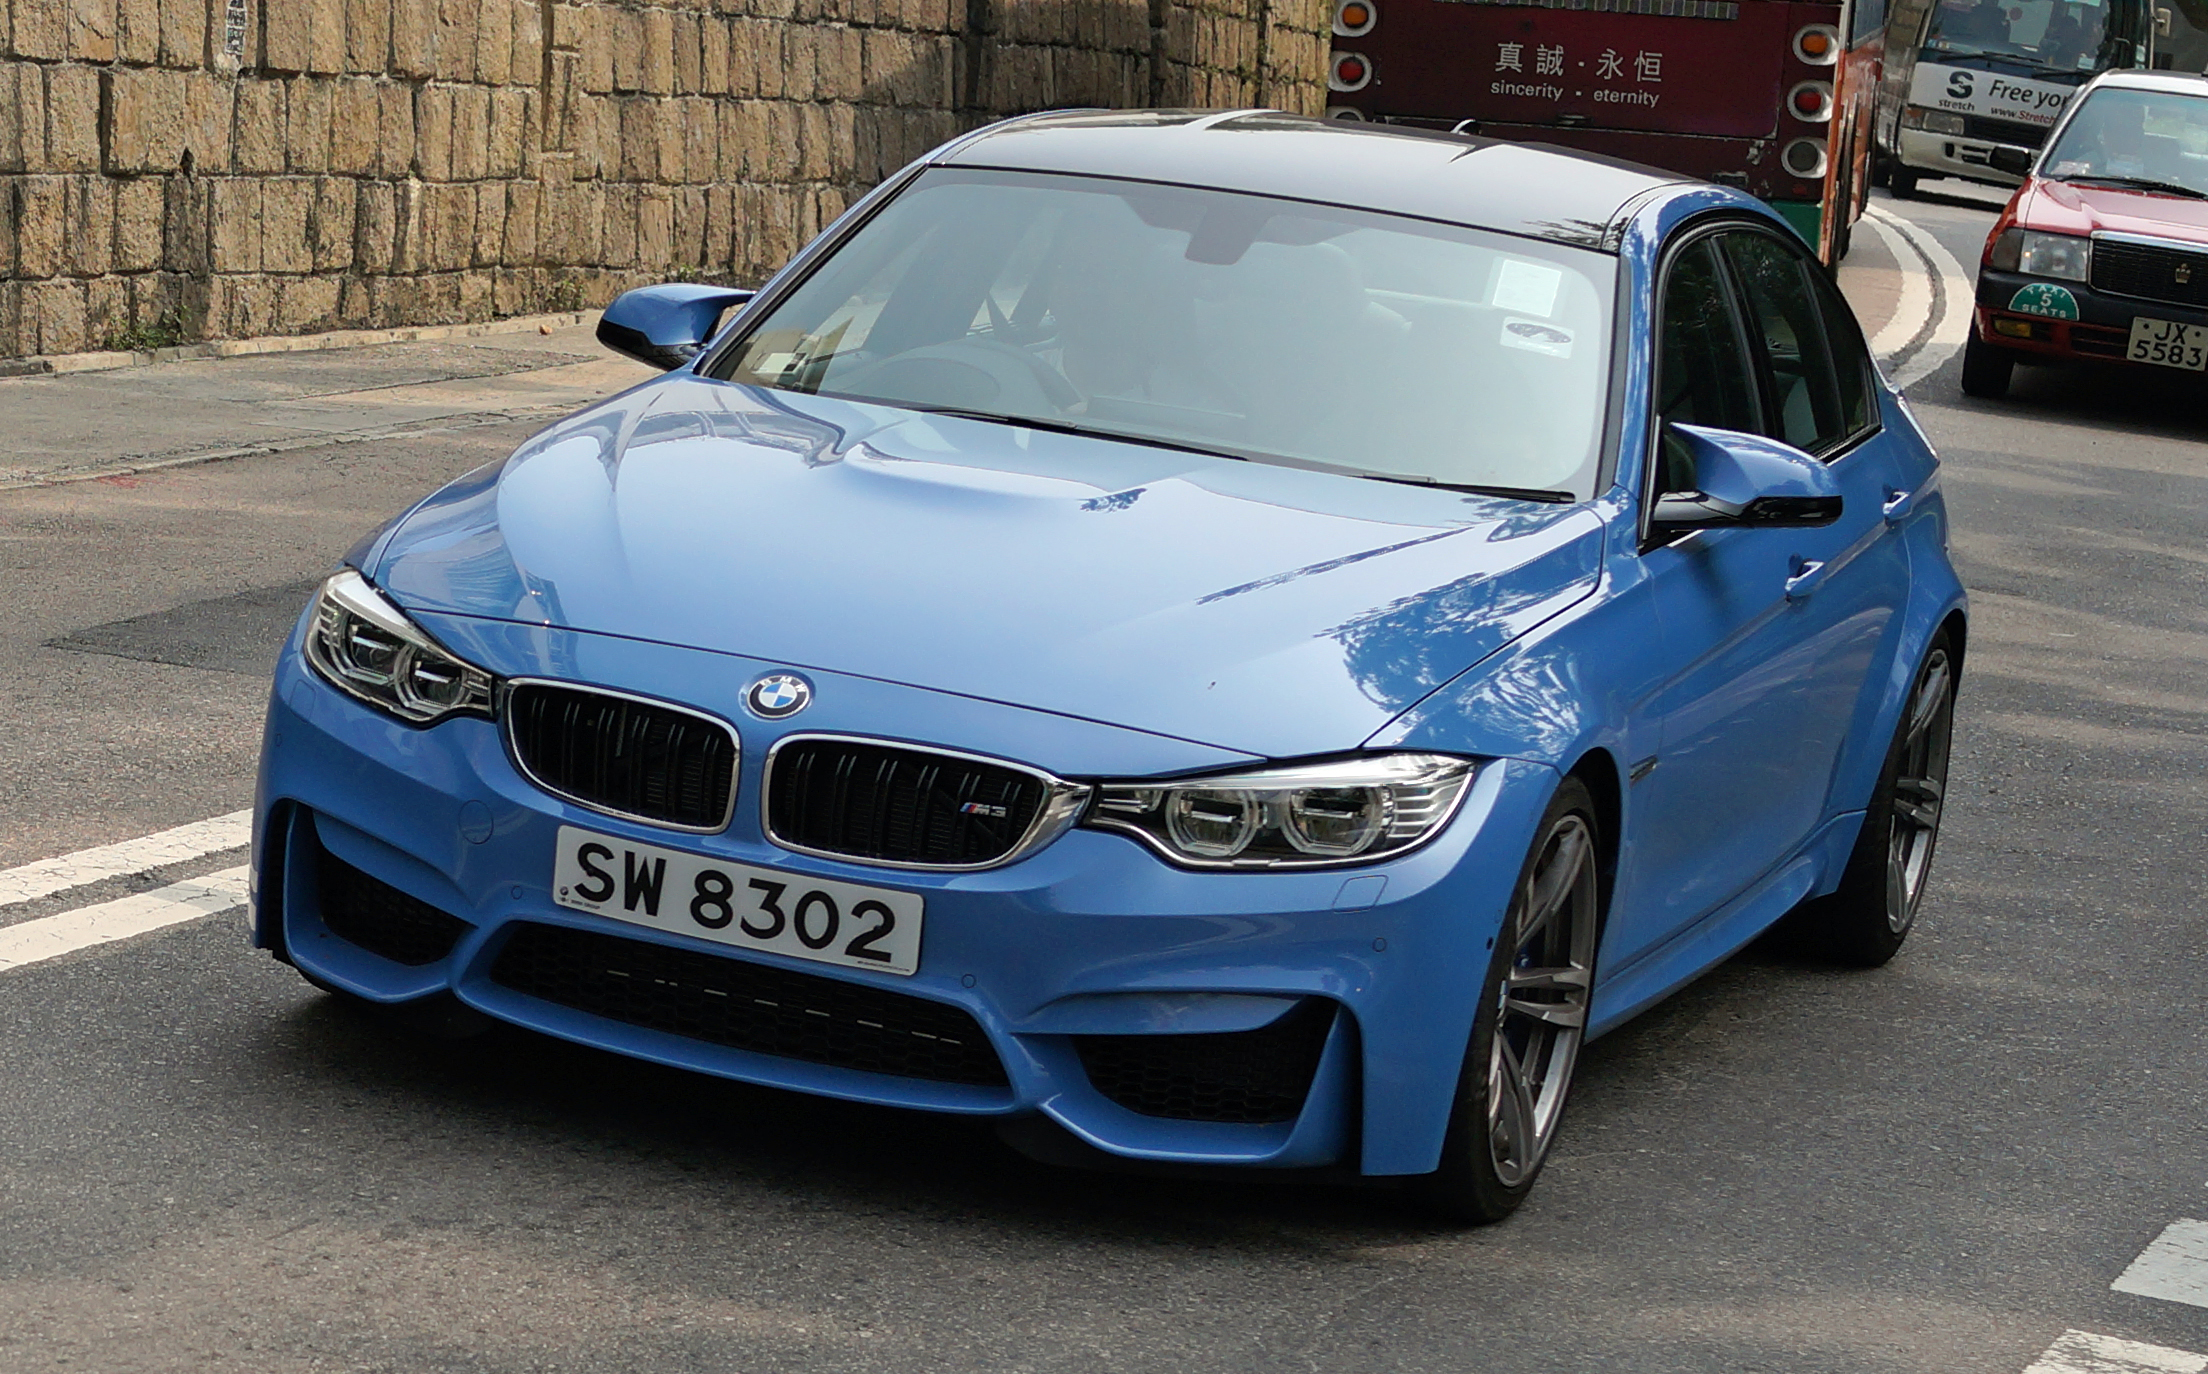 One of the reasons I love the new breed of Beamers is that they have offbeat colours which make them stand out.. love this shade of blue!